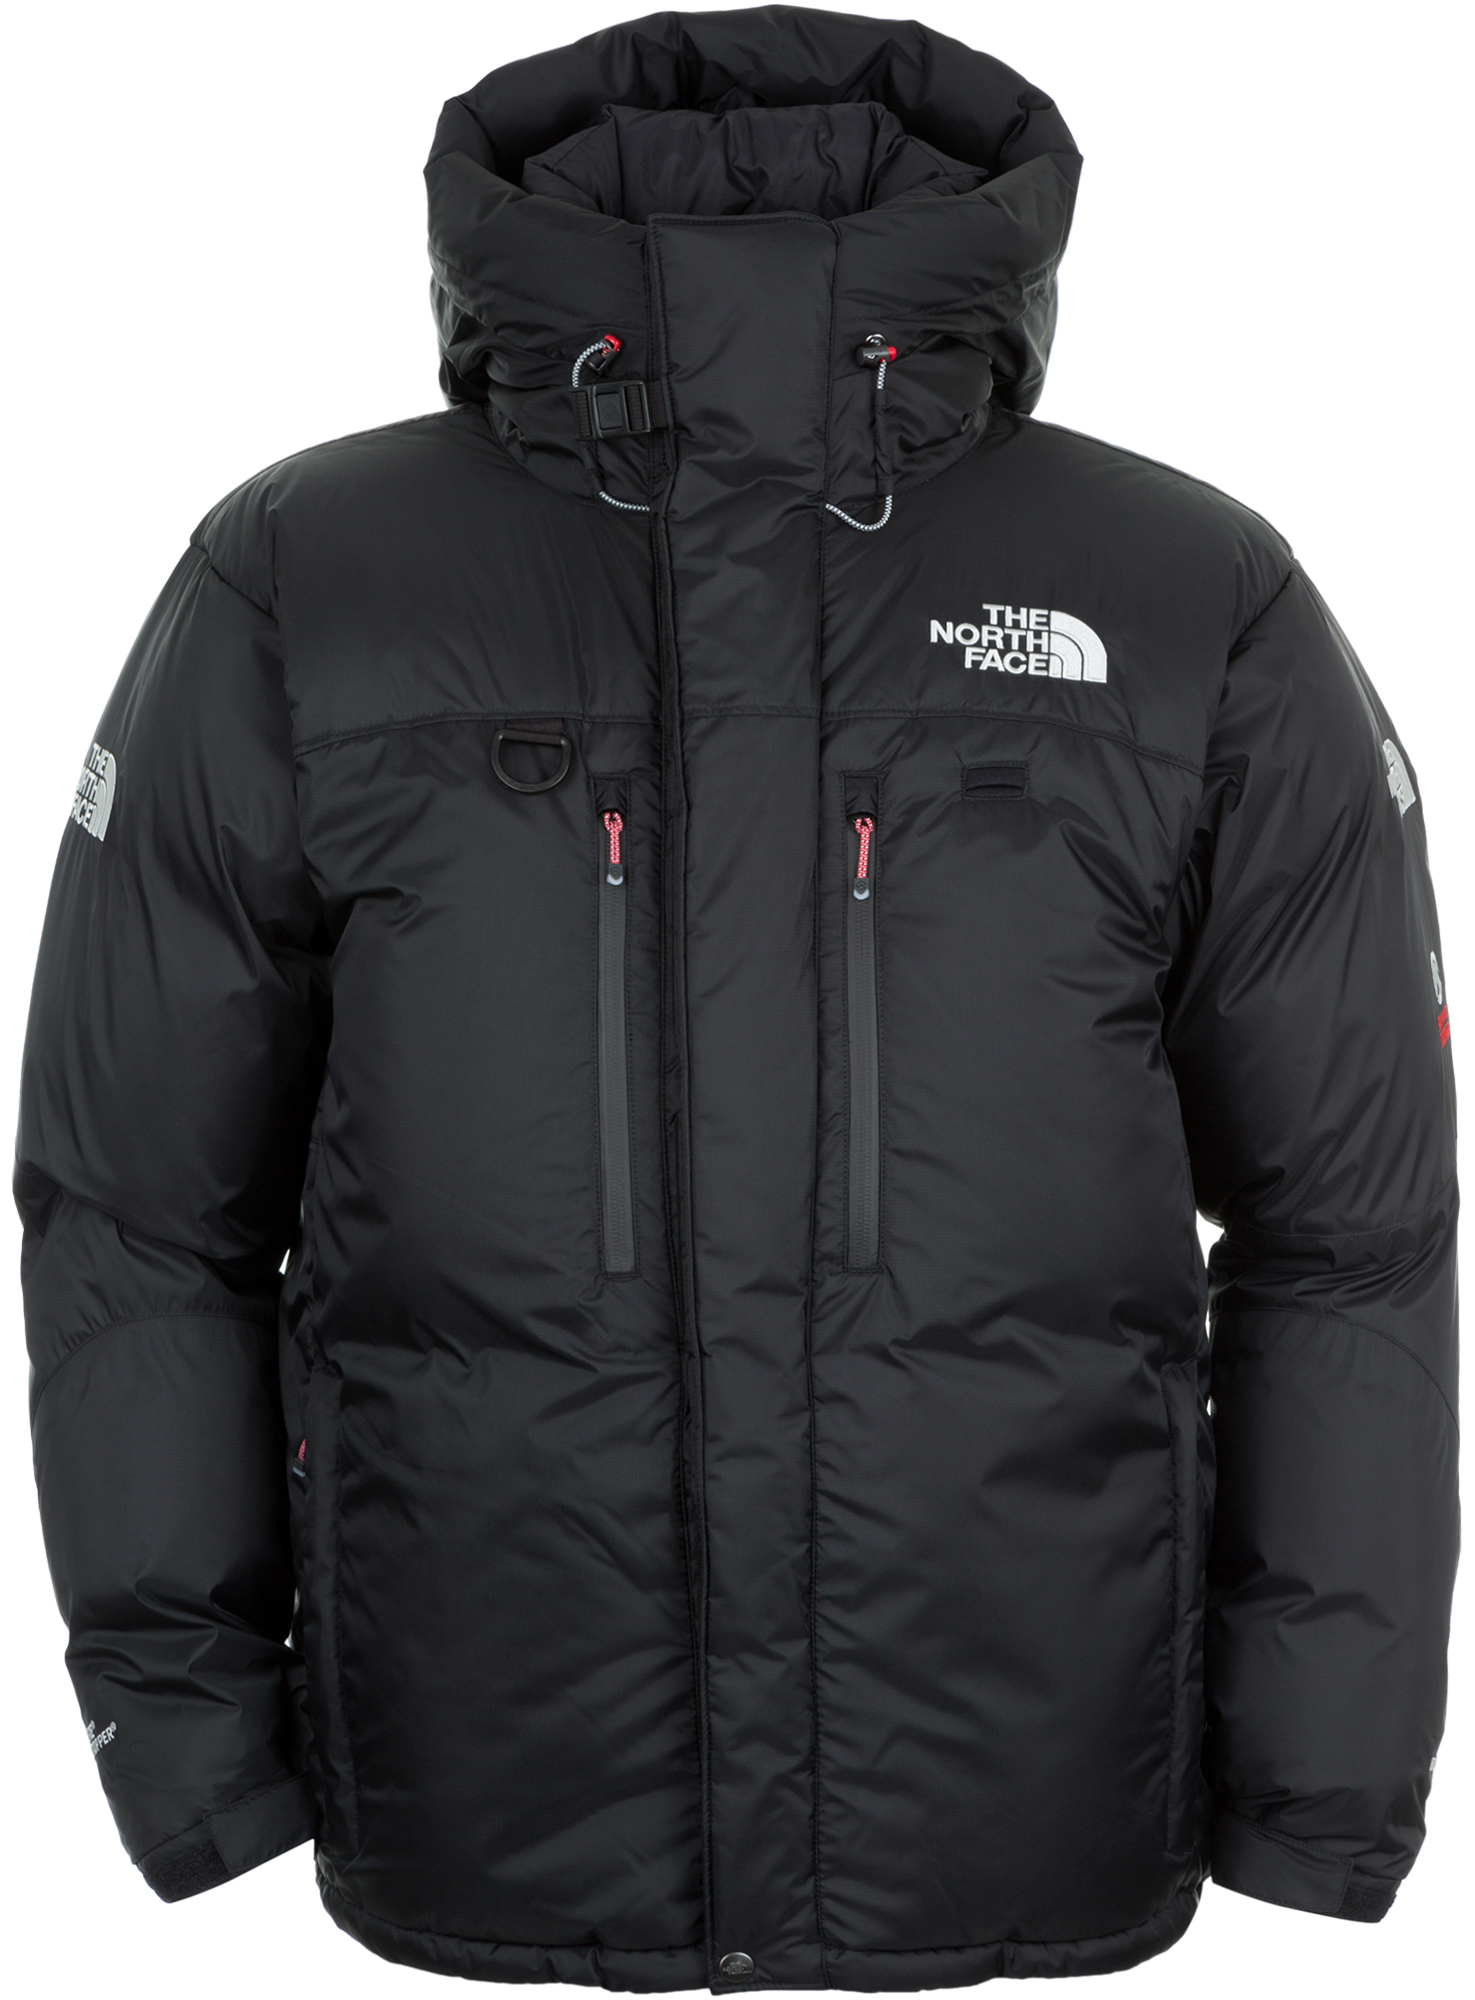 The North Face Куртка пуховая мужская The North Face Himalayan ботинки the north face the north face th016amvyk48